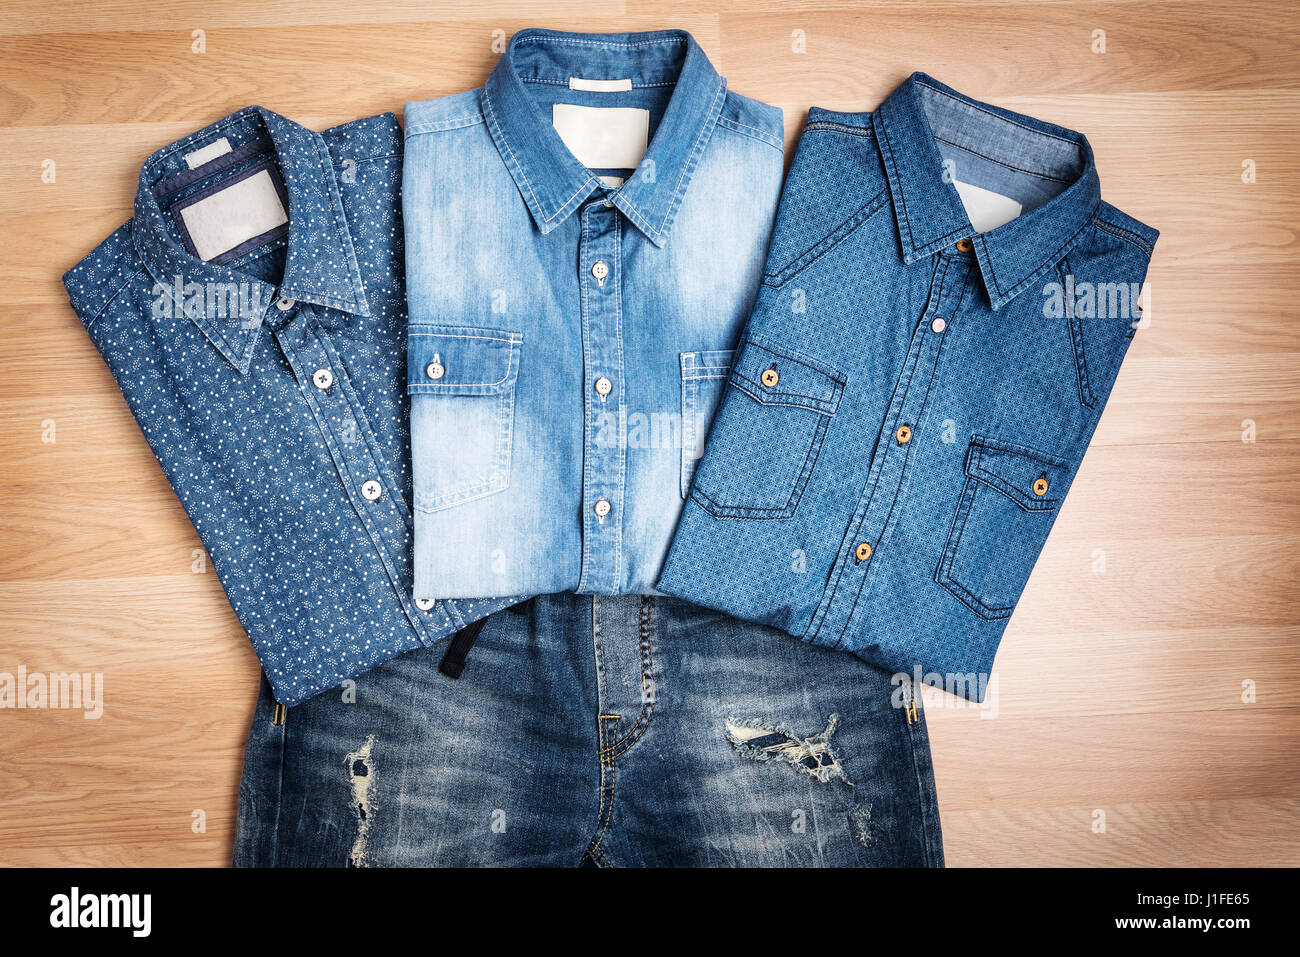 Men Casual Fashion Outfit On Wooden Table Top View Blue Cotton